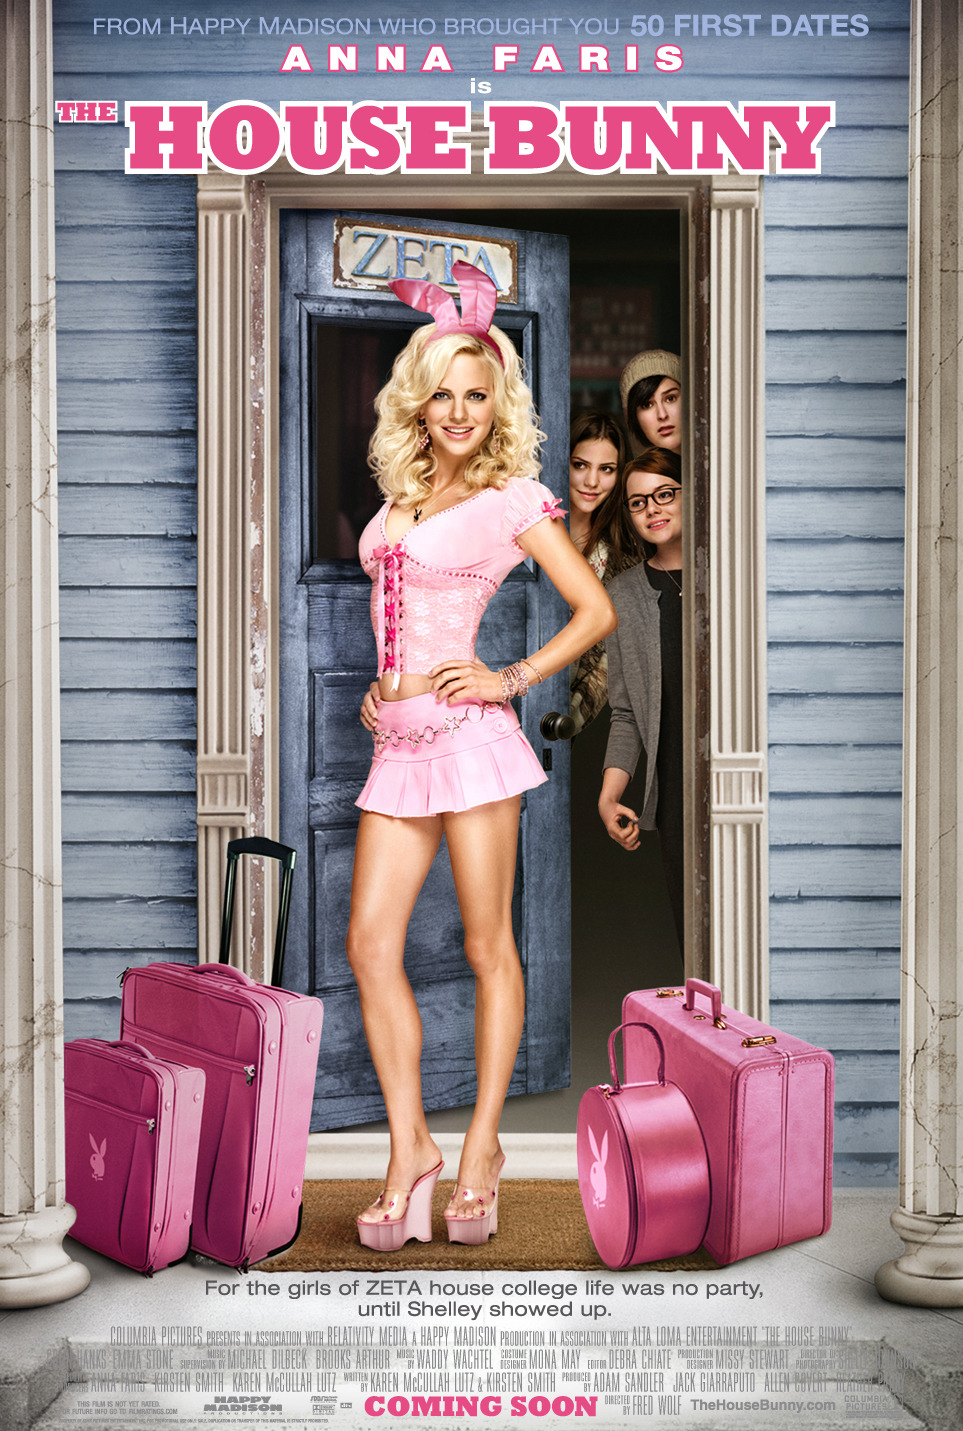 268. The House Bunny (May 18)